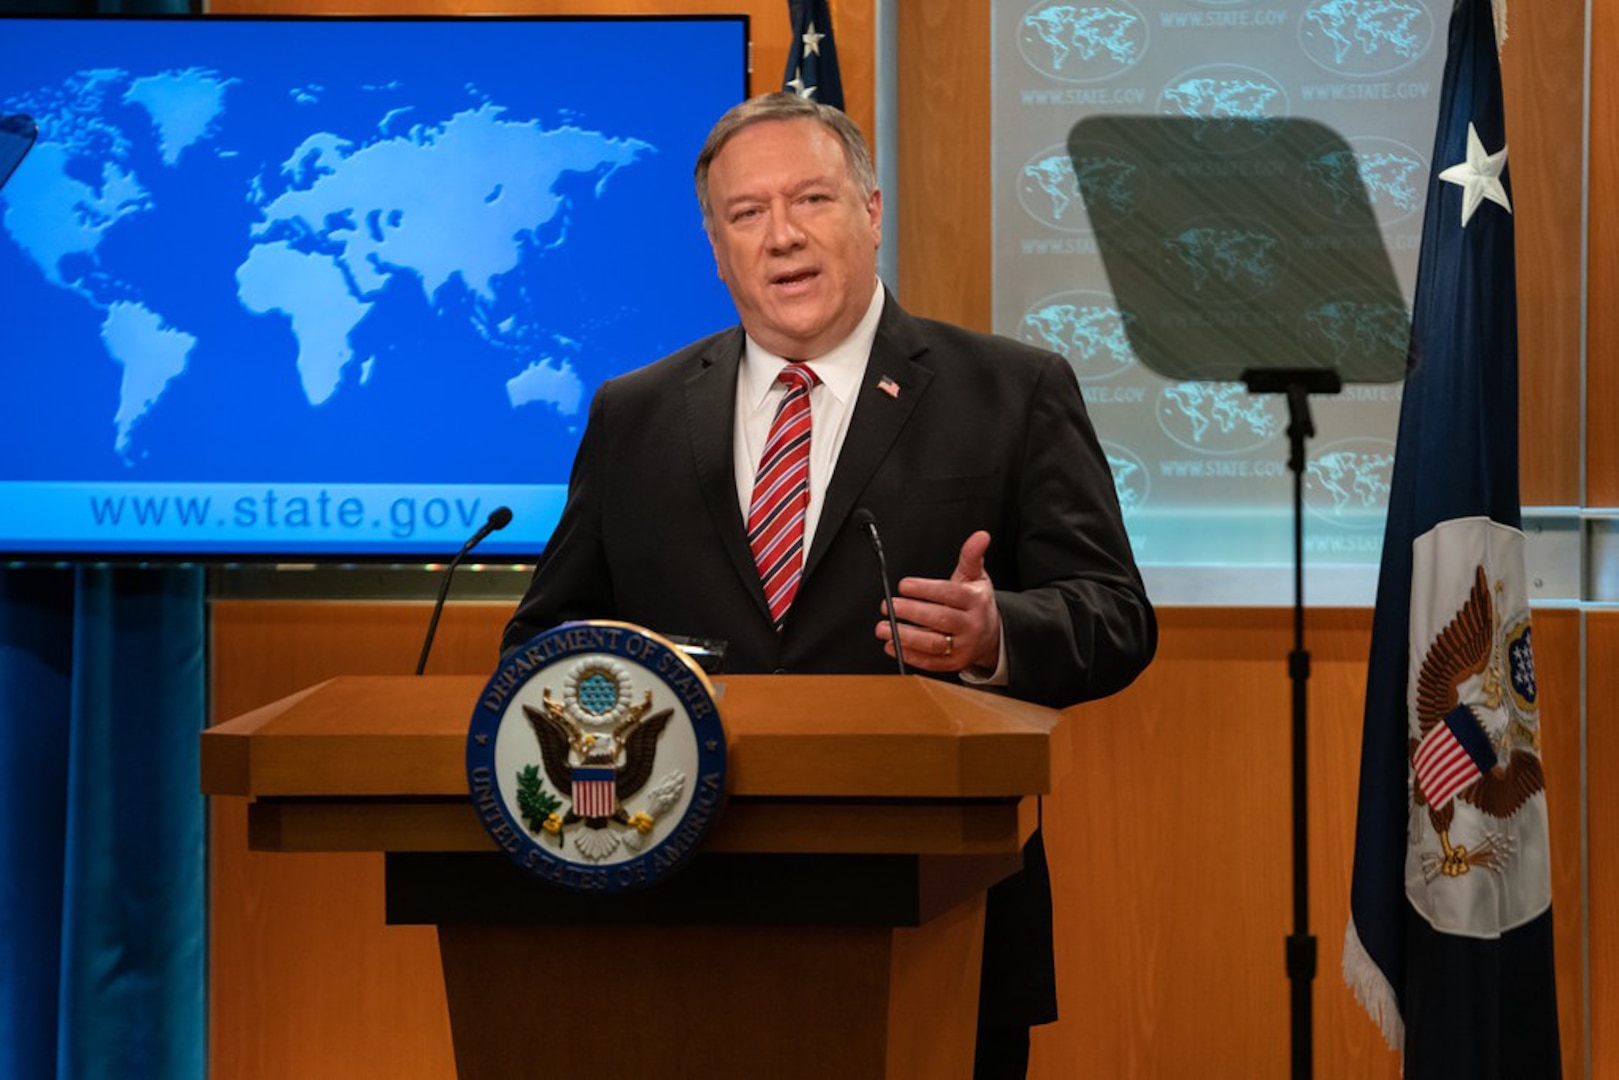 Statement by Secretary of State Michael R. Pompeo on Indonesia National Day